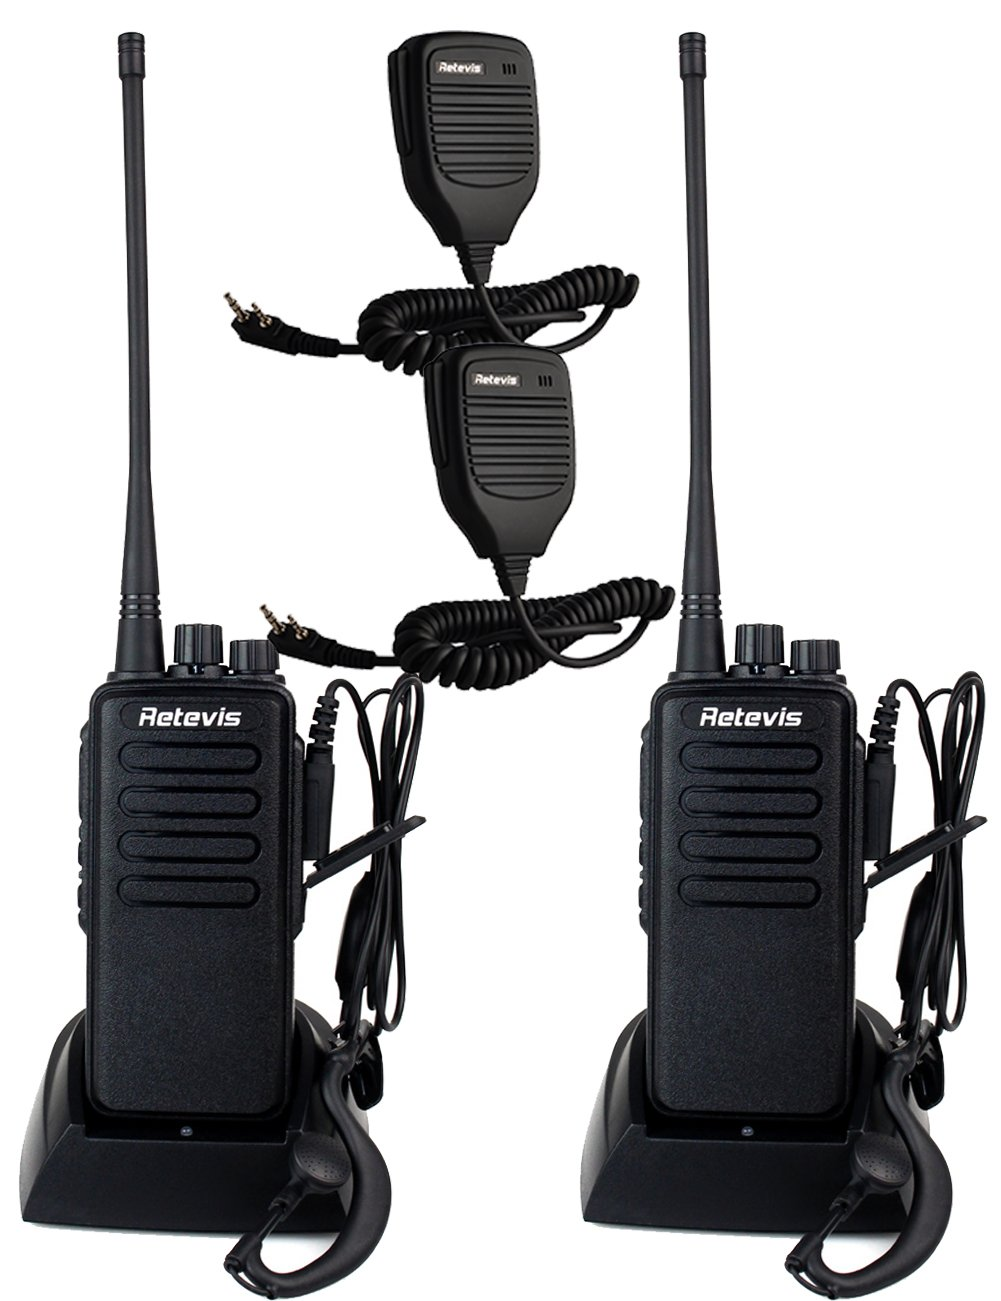 Retevis RT1 10W UHF Rechargeable Two-Way Radio 70CM 16CH VOX Scrambler Handheld Transceiver with Earpiece and Speaker Mic (2 Pack)